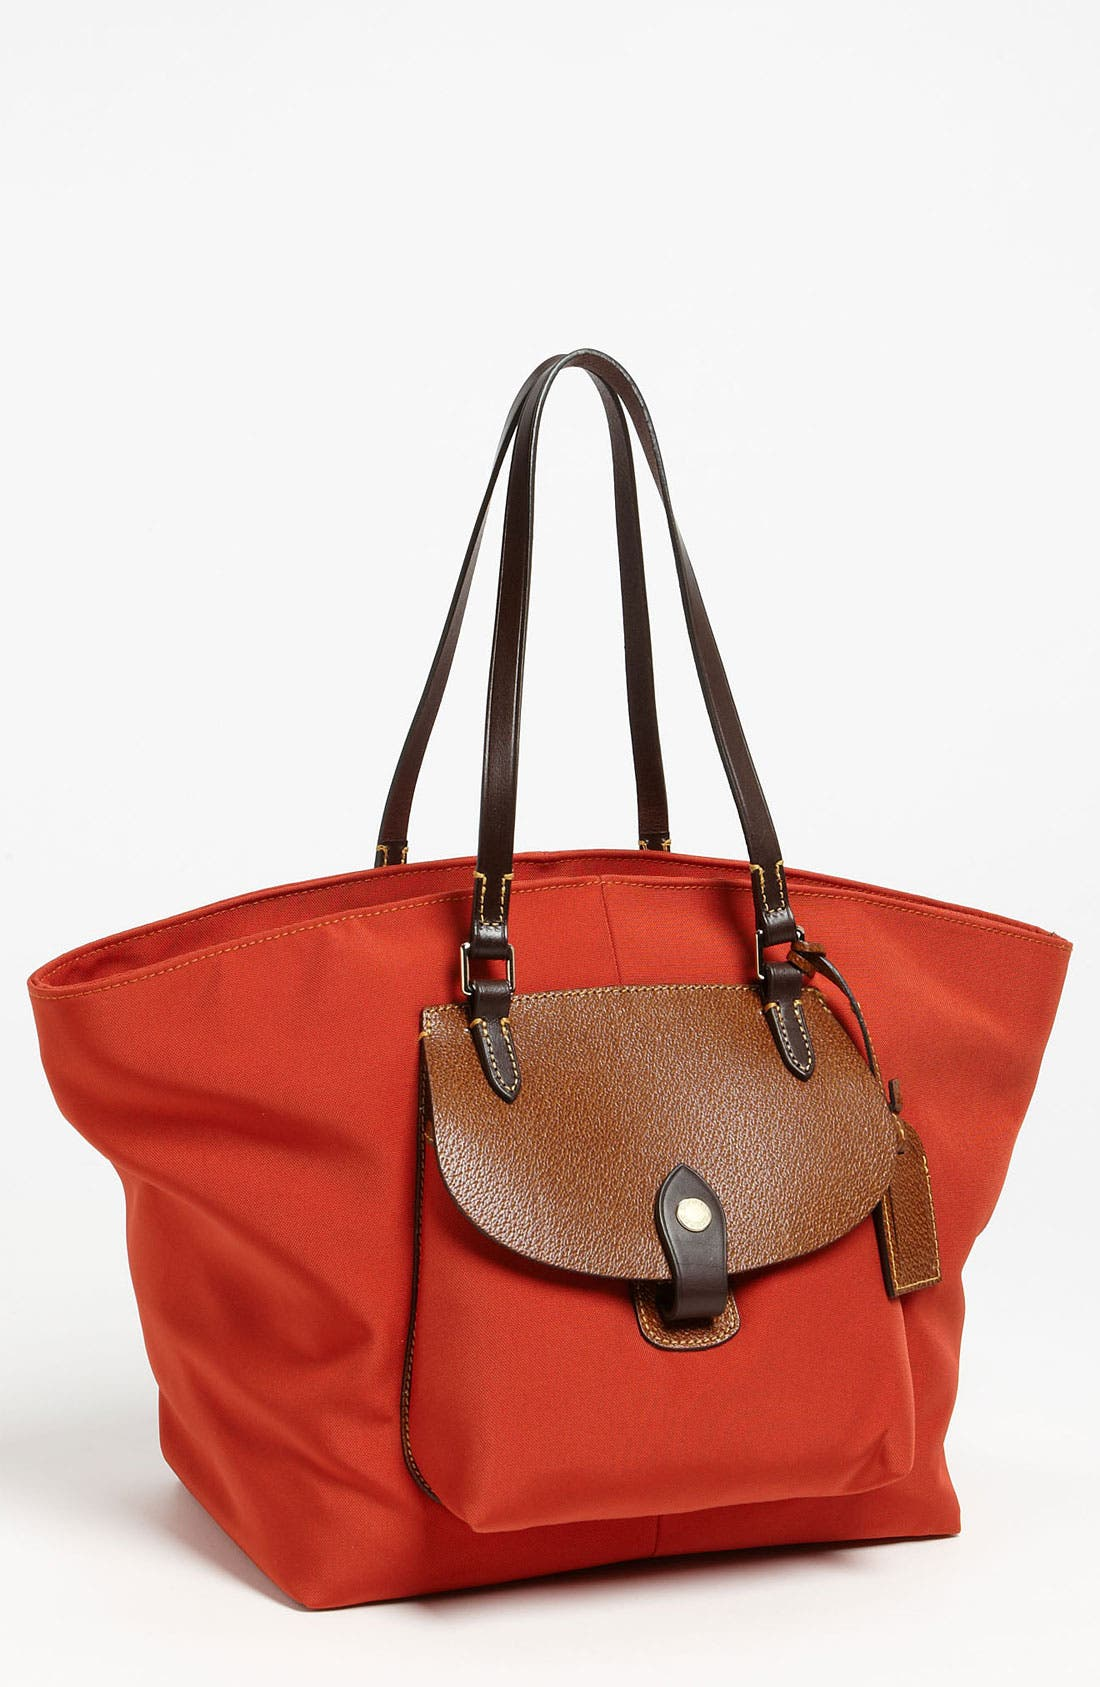 Main Image - Dooney & Bourke 'Pocket' Shopper